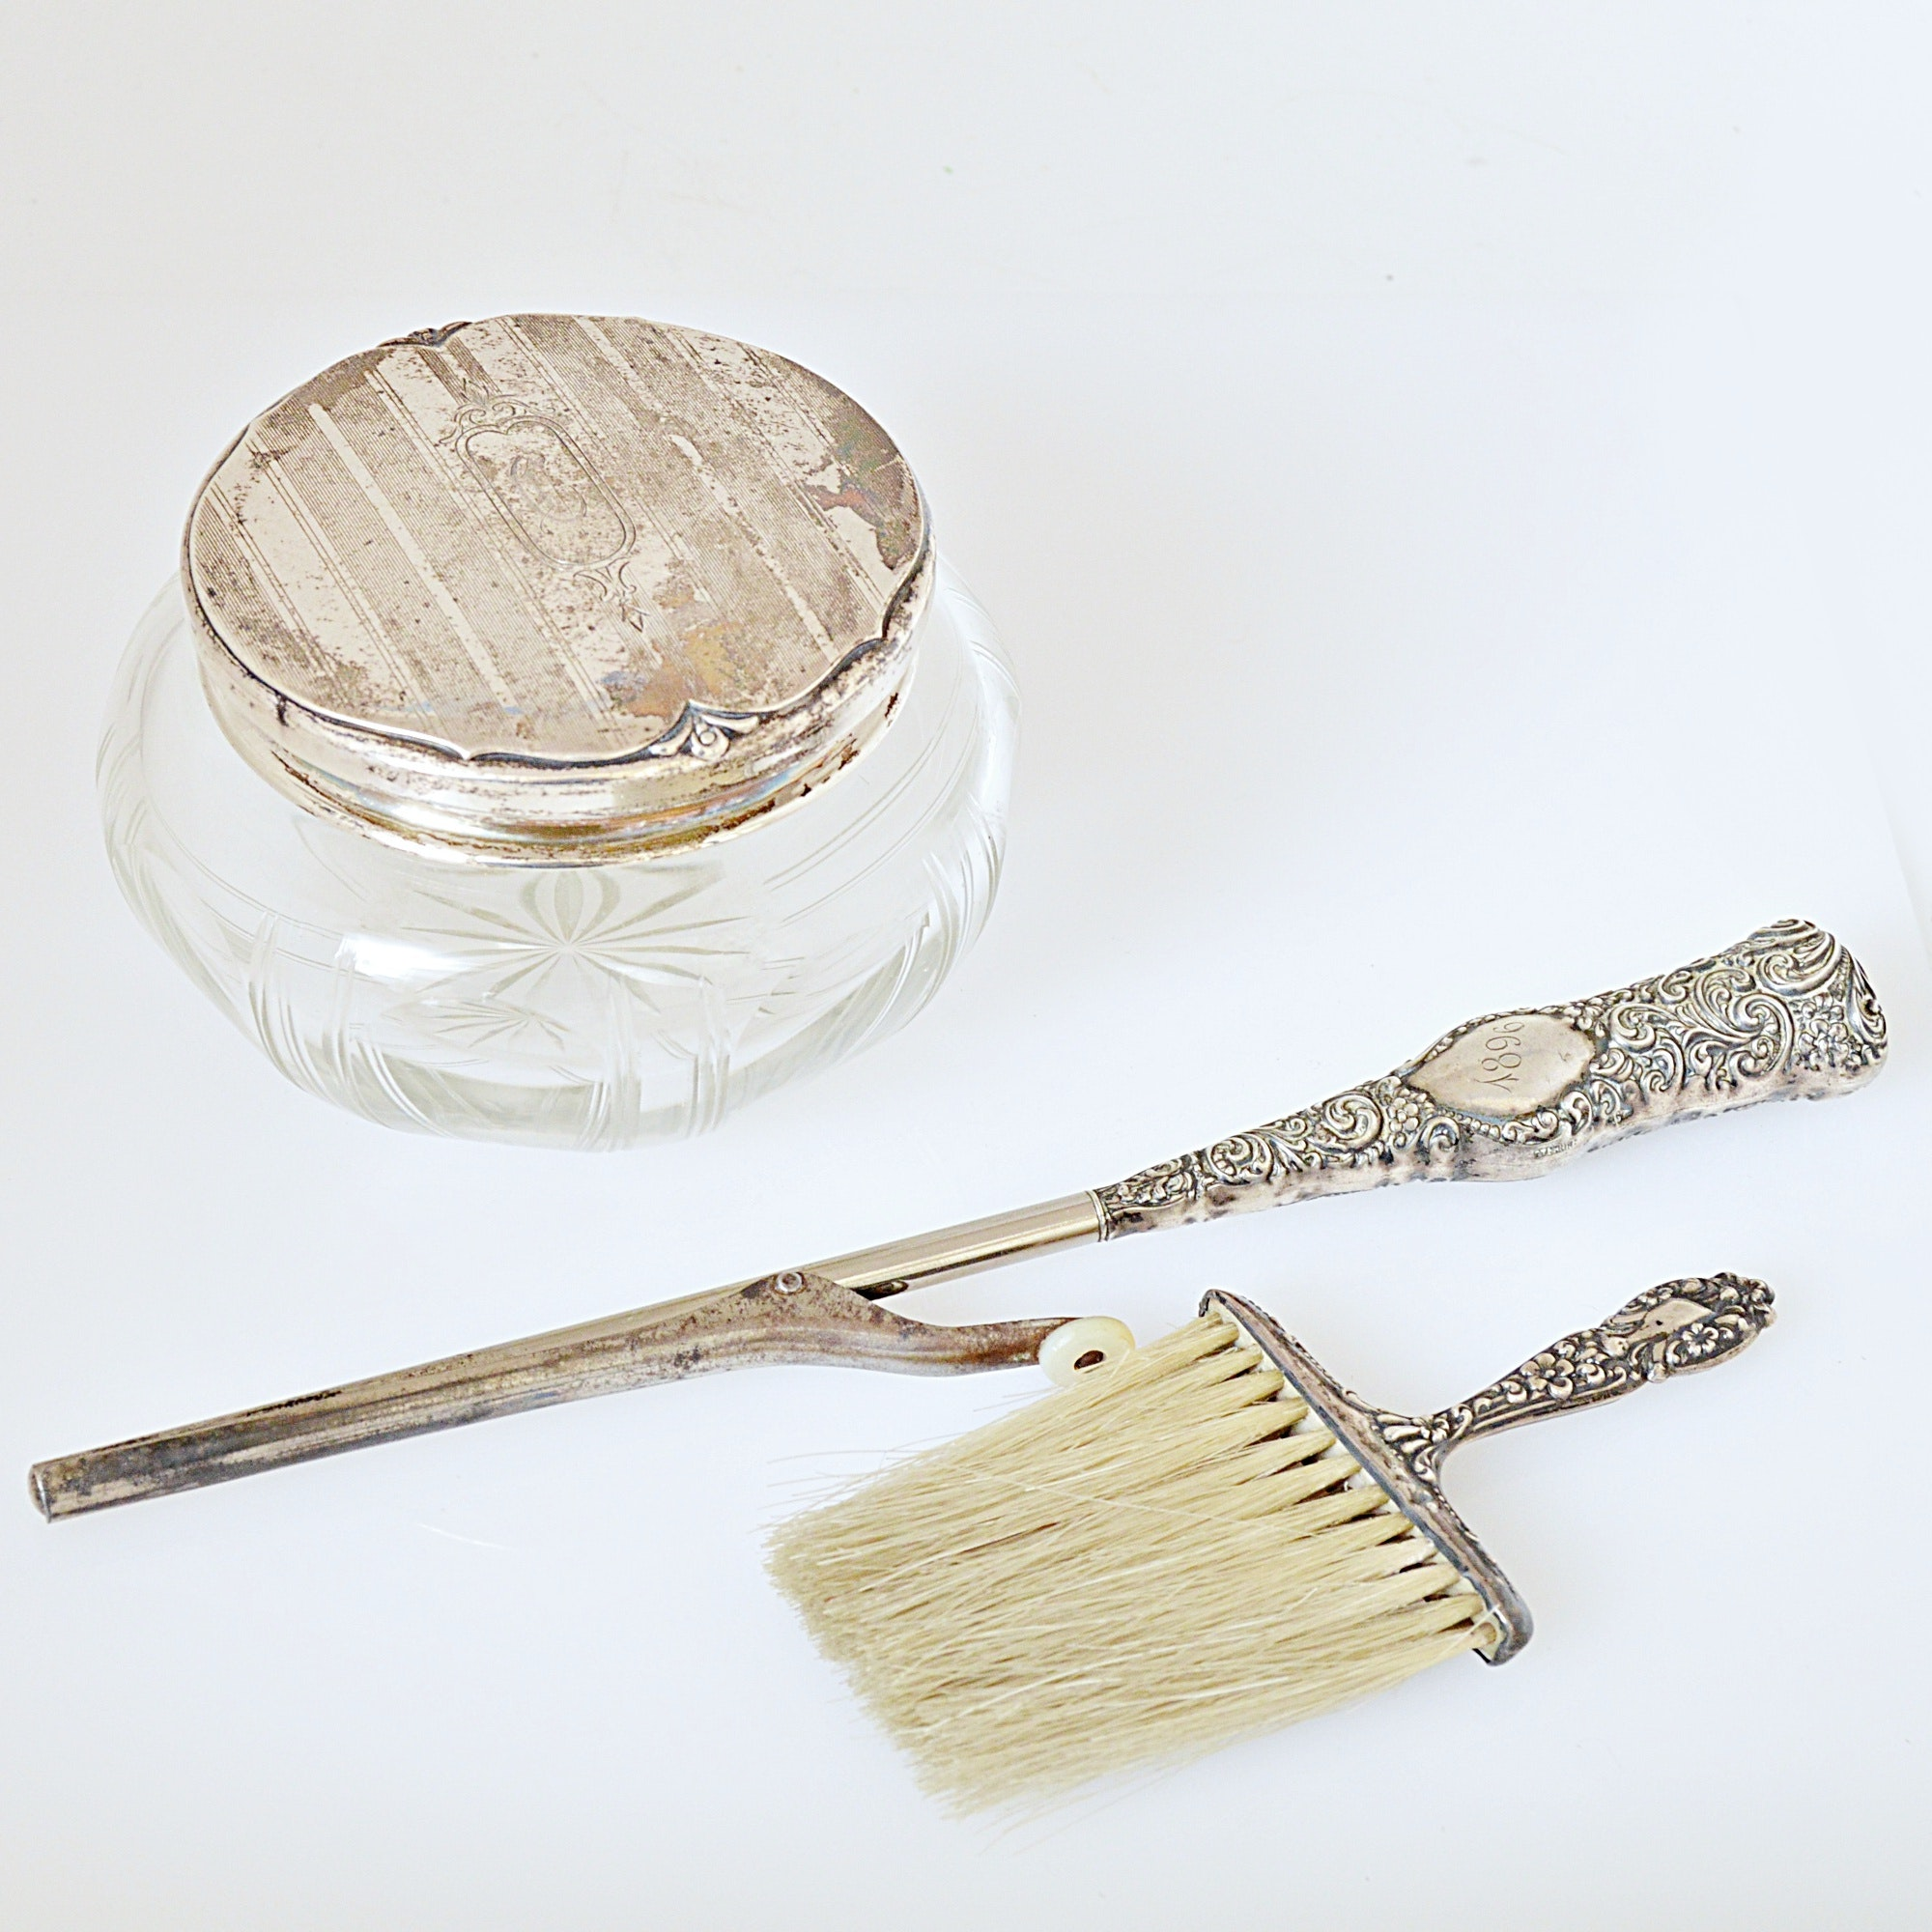 Sterling Silver Handled and Lidded Vanity Accessories